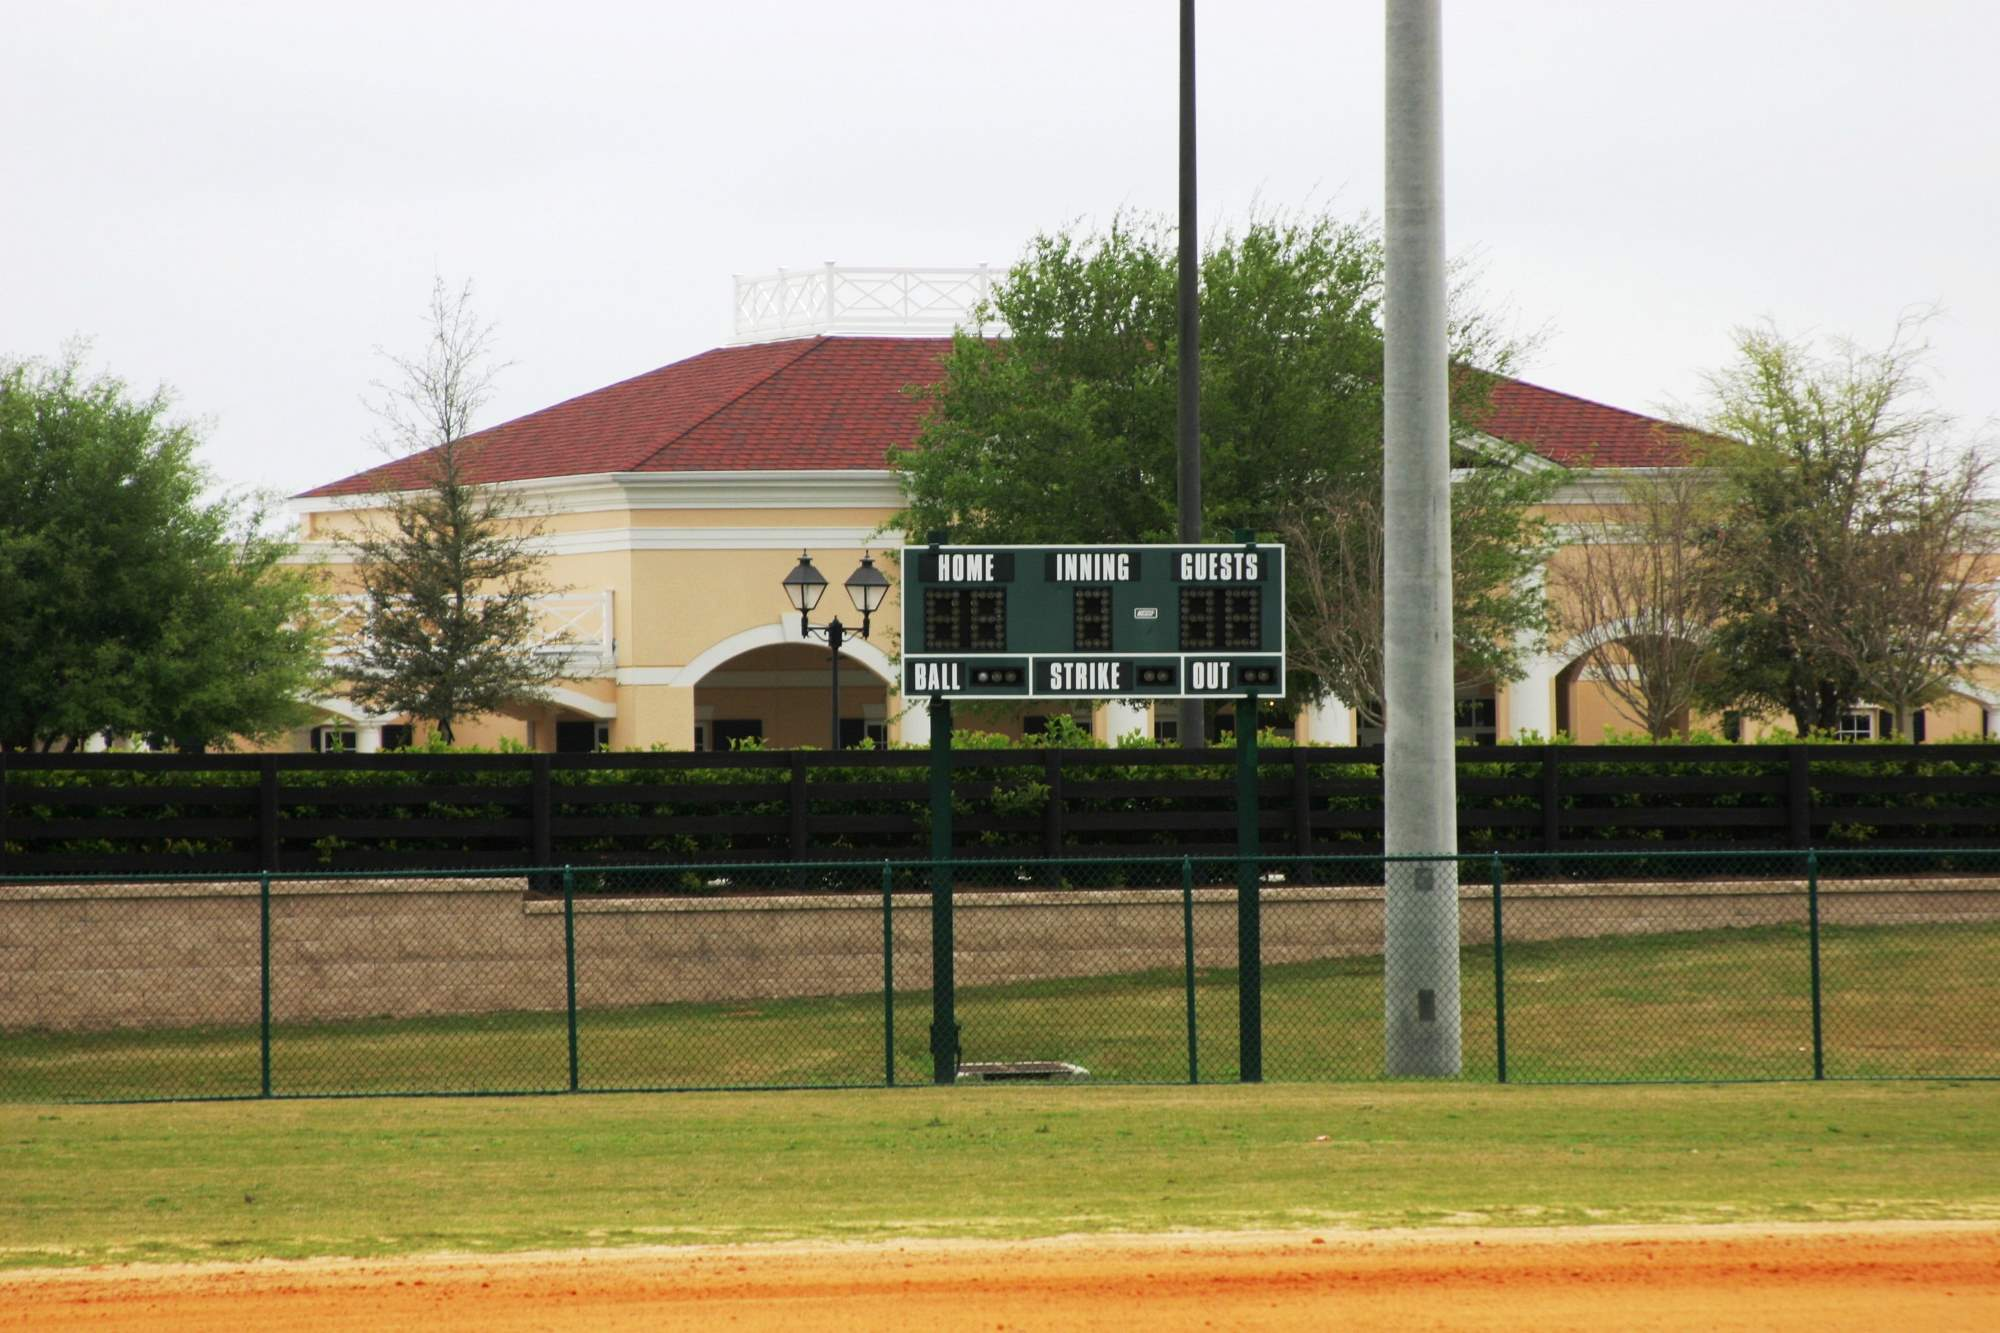 Middle School image 6 of 37